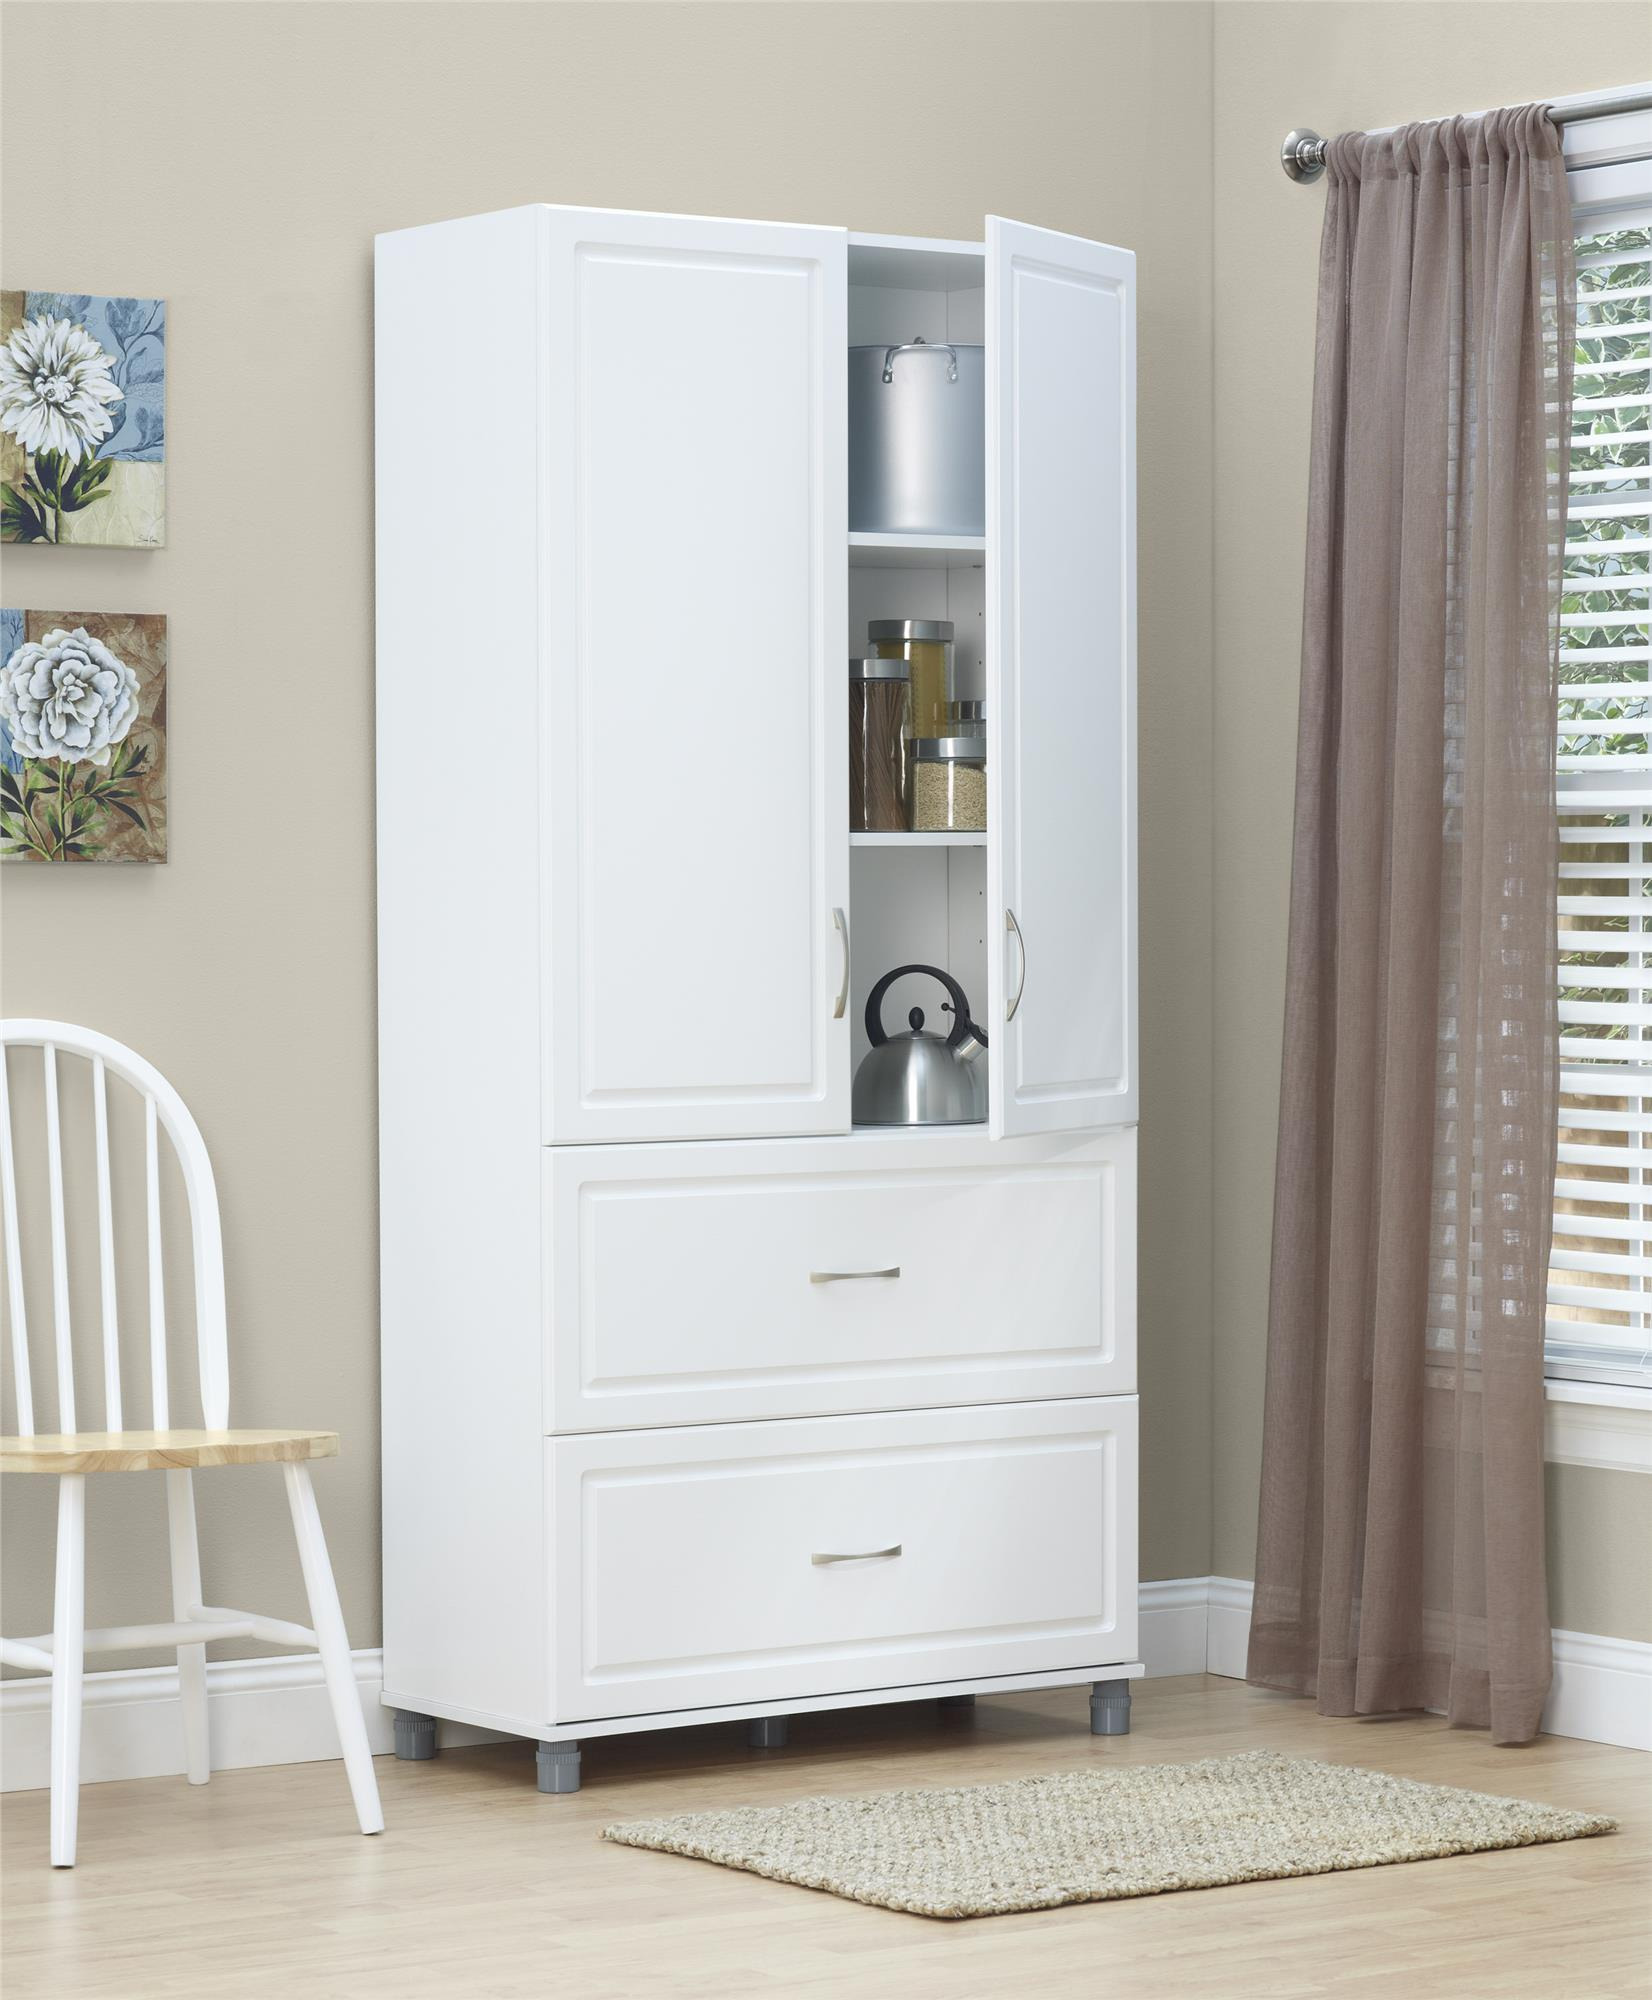 2411 P Kendall 36 2 Door 2 Drawer Storage Cabinet White